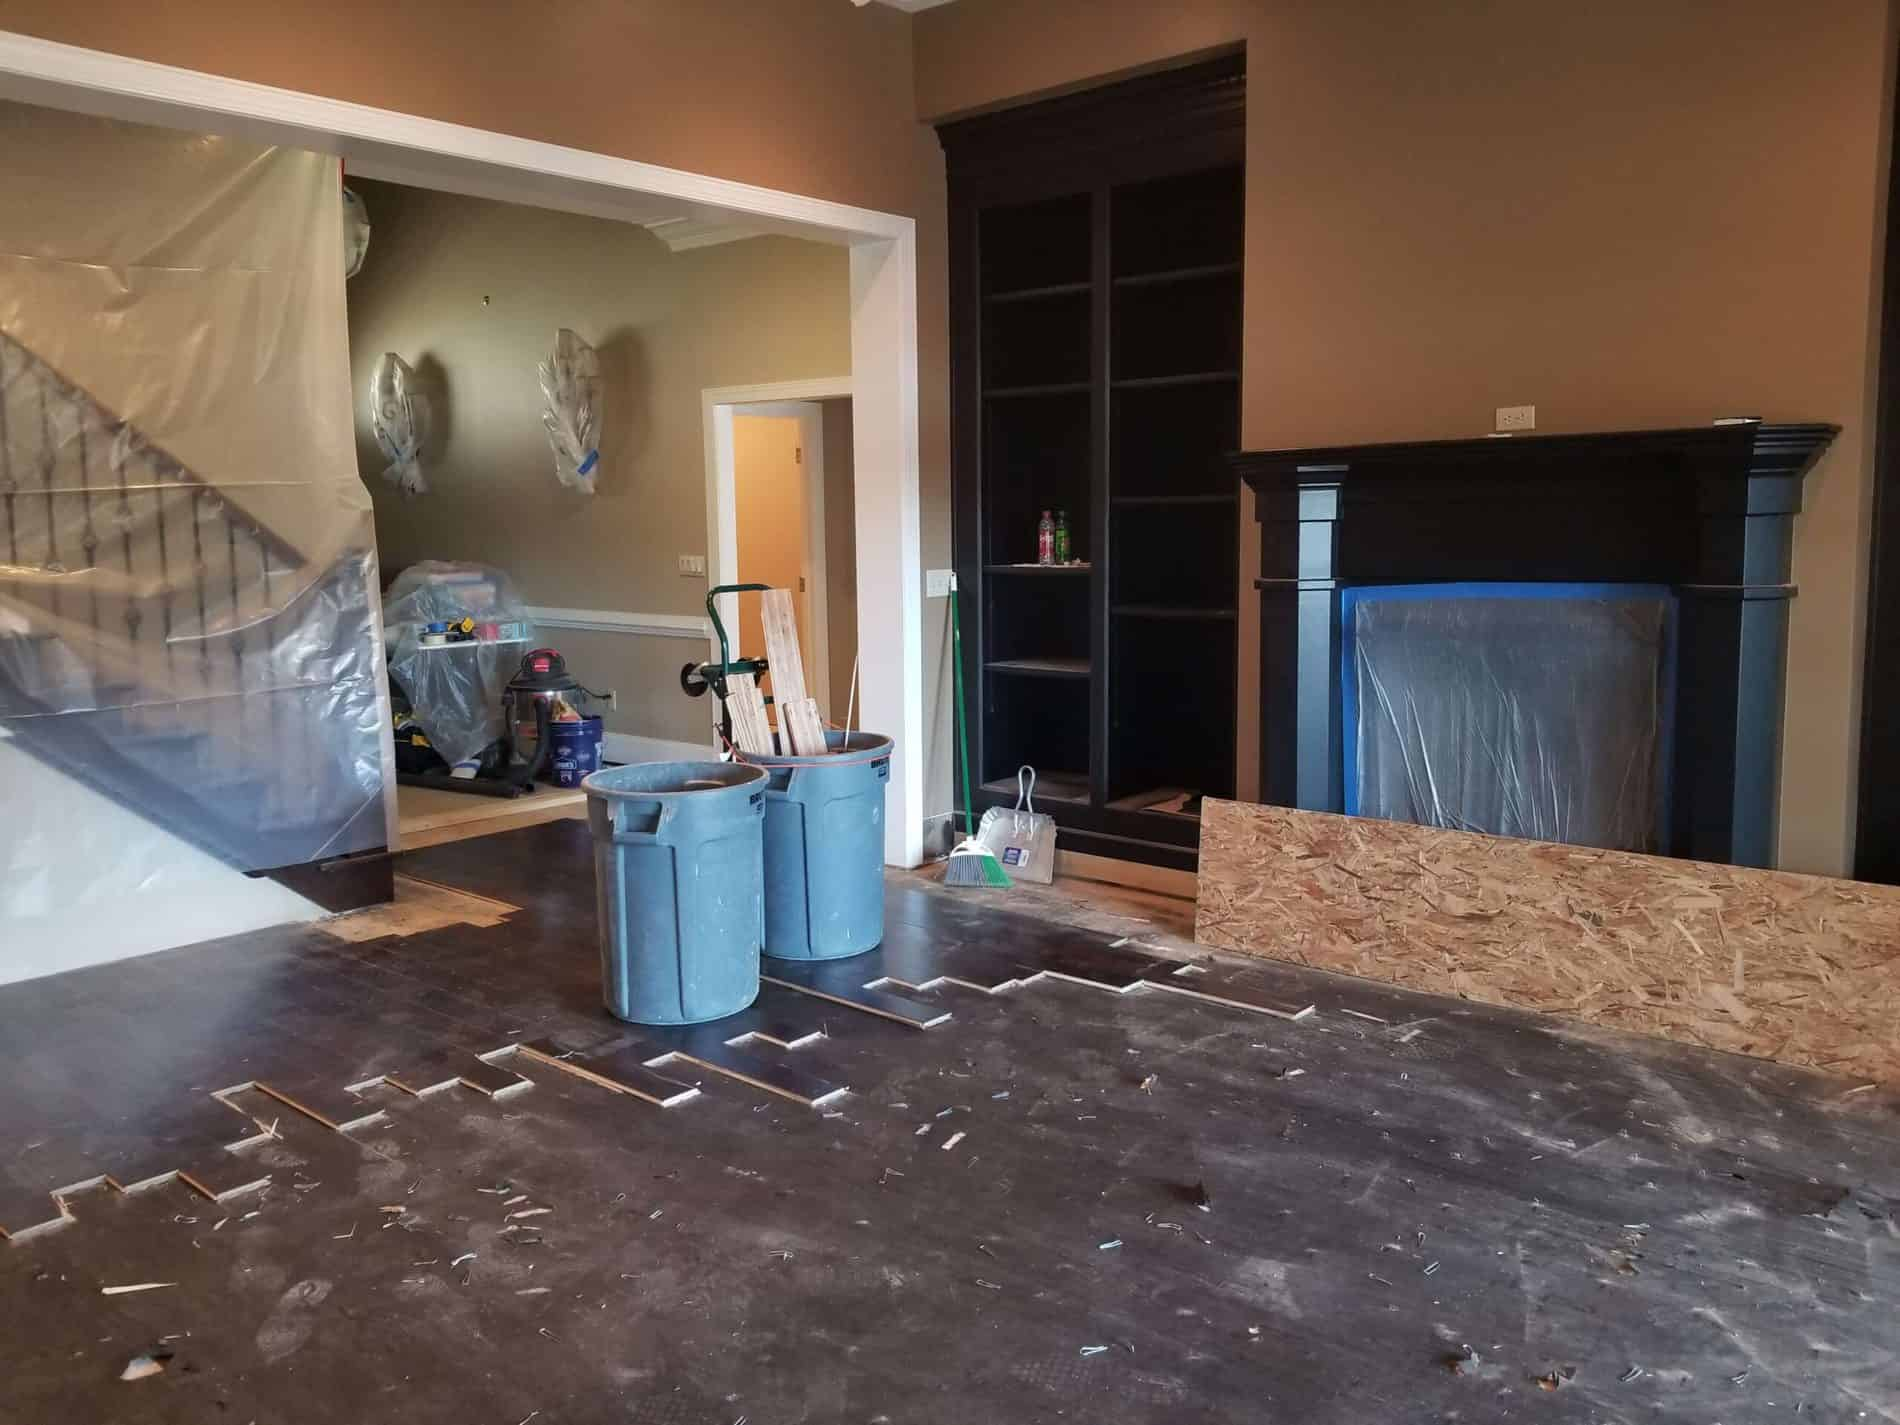 Living room being restored after water damage